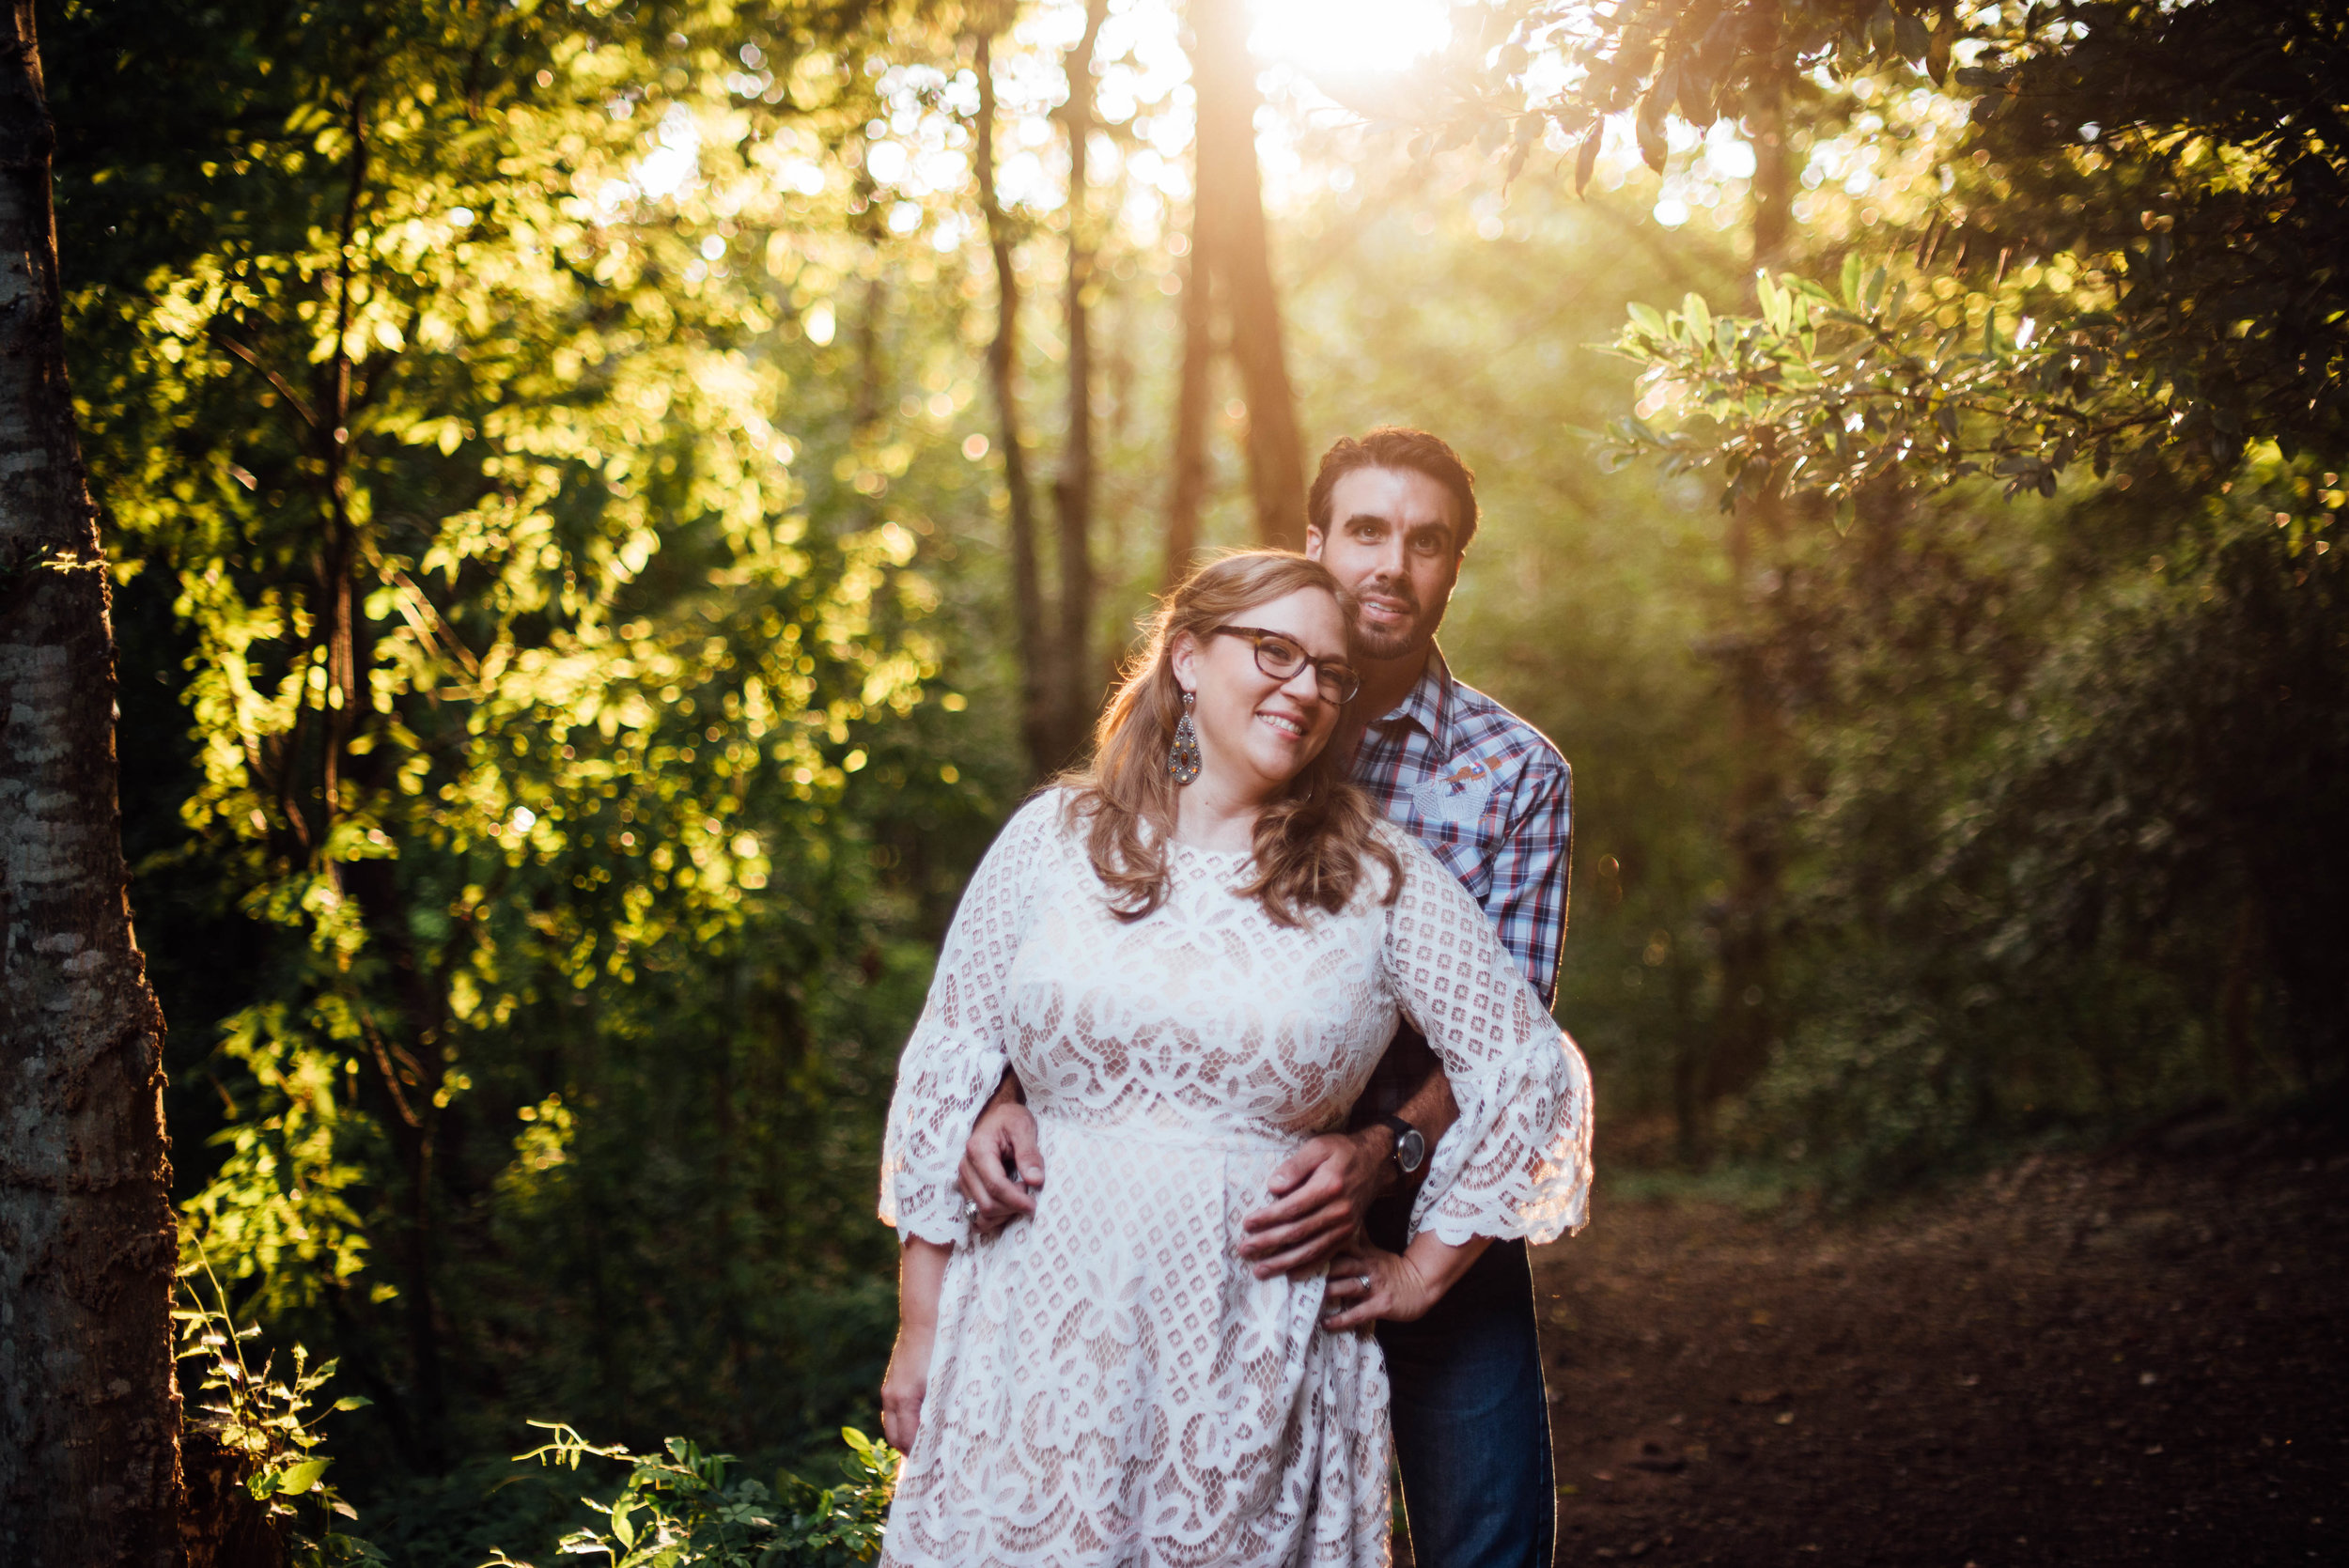 Jordan + Kent_French-Quarter-New-Orleans-City-Park-Engagement-Photos_Gabby Chapin_Print_0104.jpg